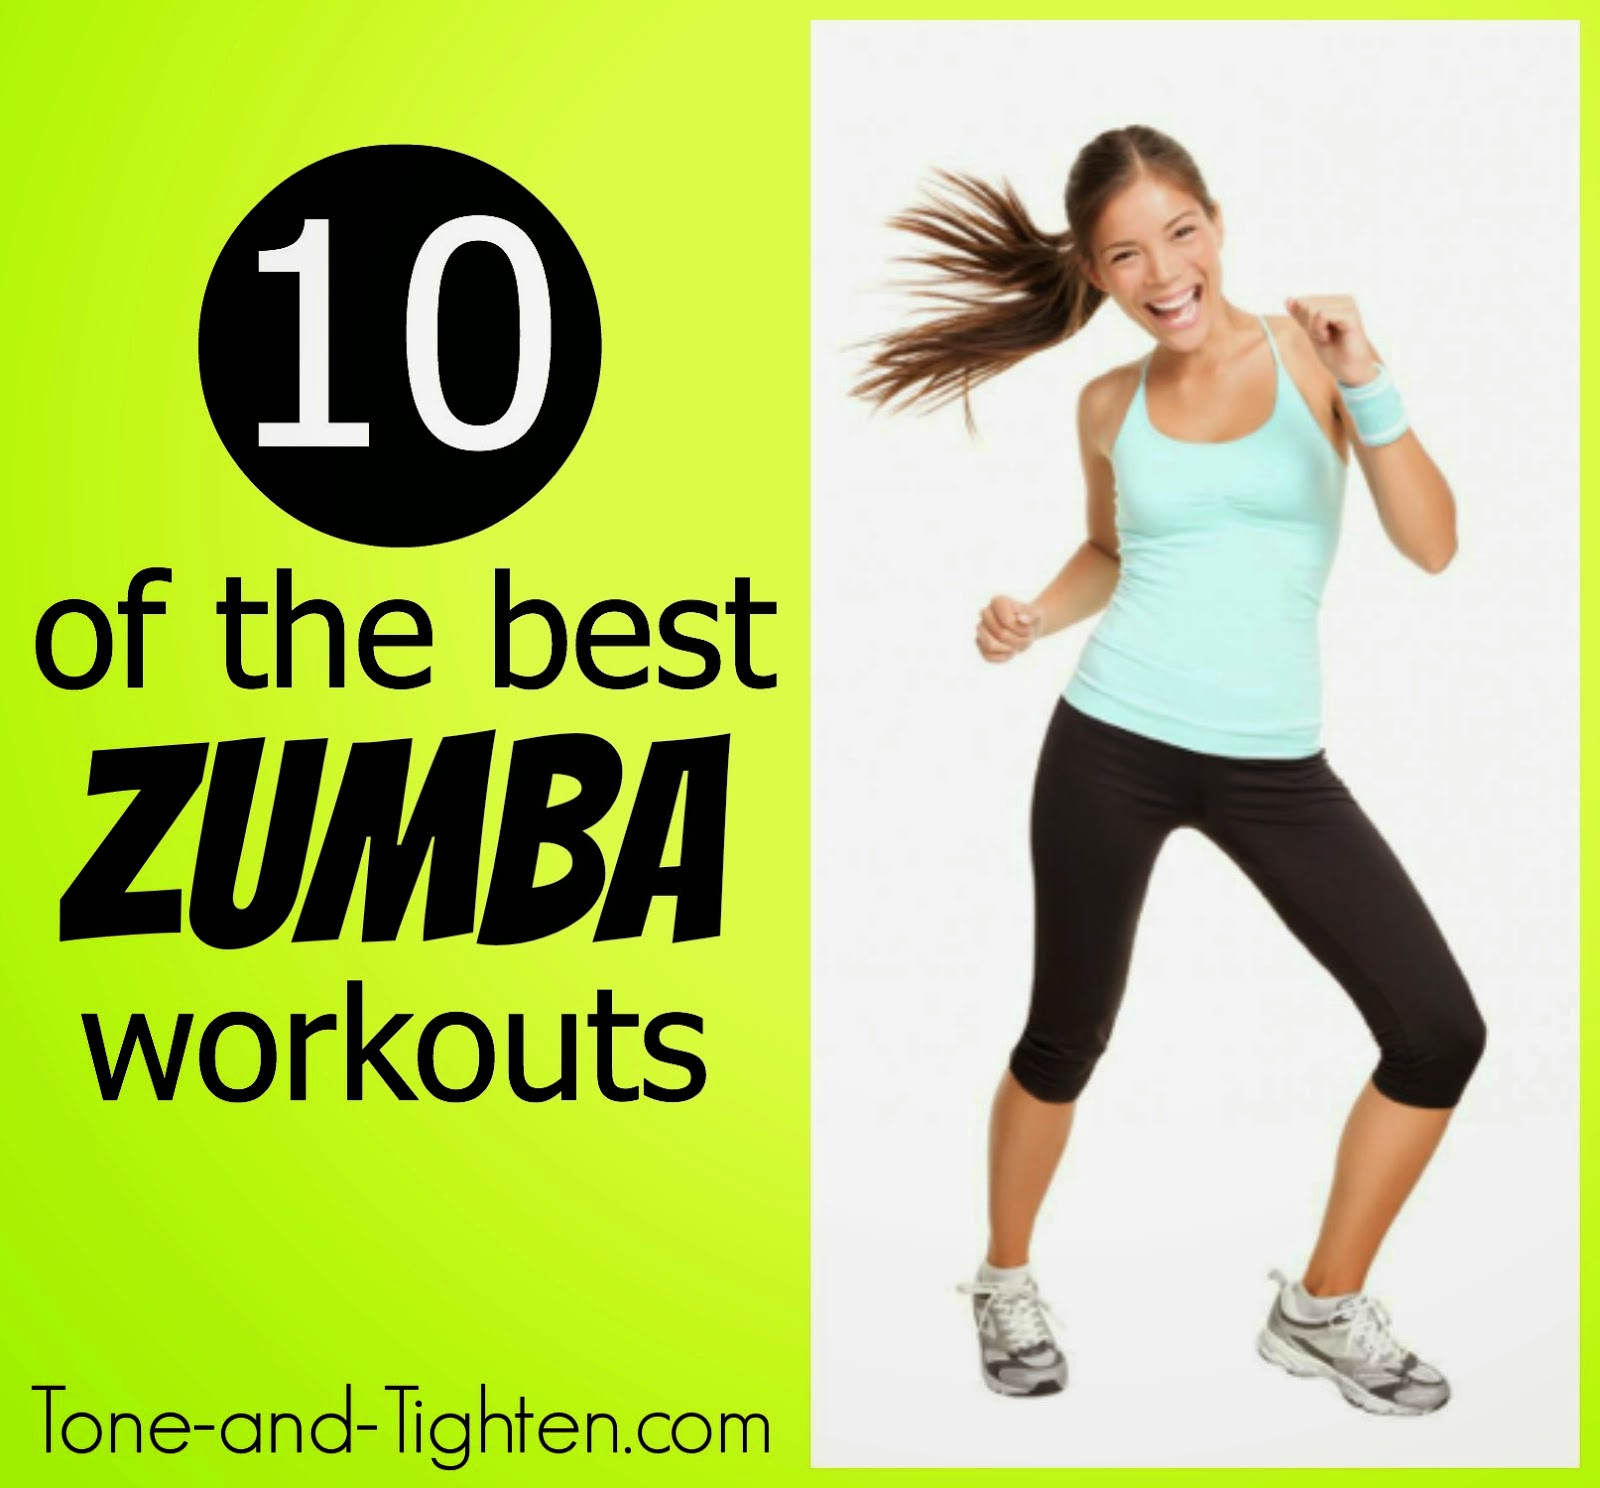 http://tone-and-tighten.com/2014/03/10-of-the-best-free-zumba-full-length-video-workouts-plus-instructional-video.html